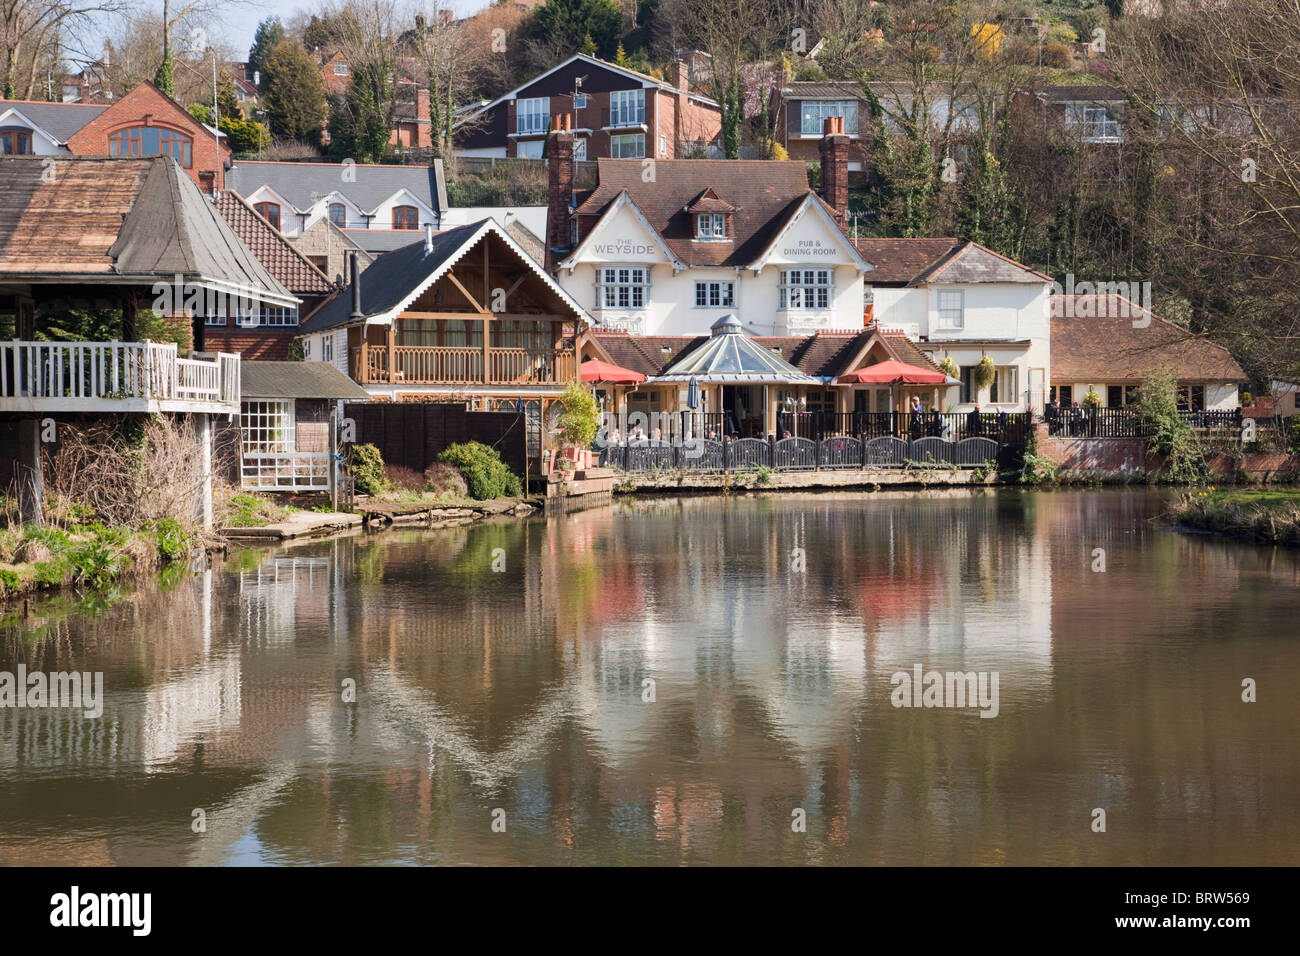 Guildford Surrey England UK The Weyside riverside pub reflected in River Wey on Godalming Navigation - Stock Image